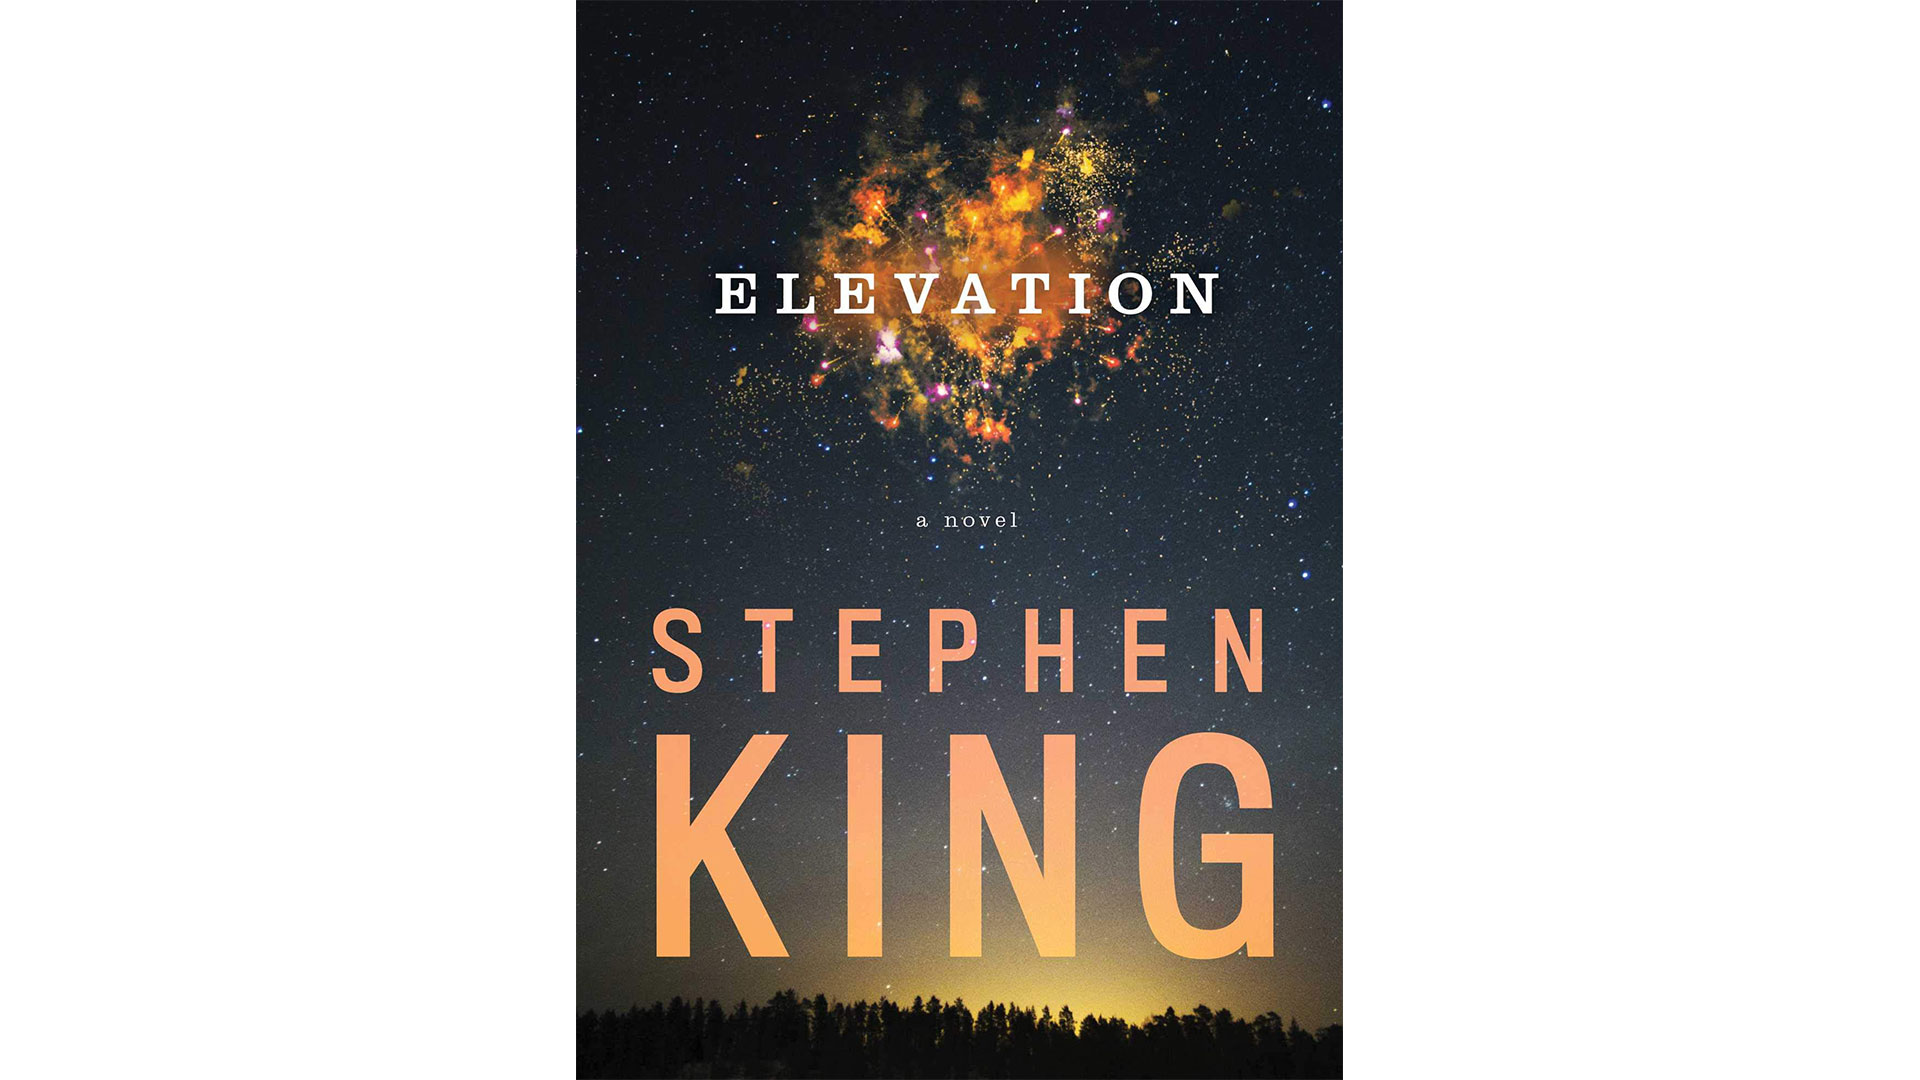 Amazon Best Books 2018 Elevation